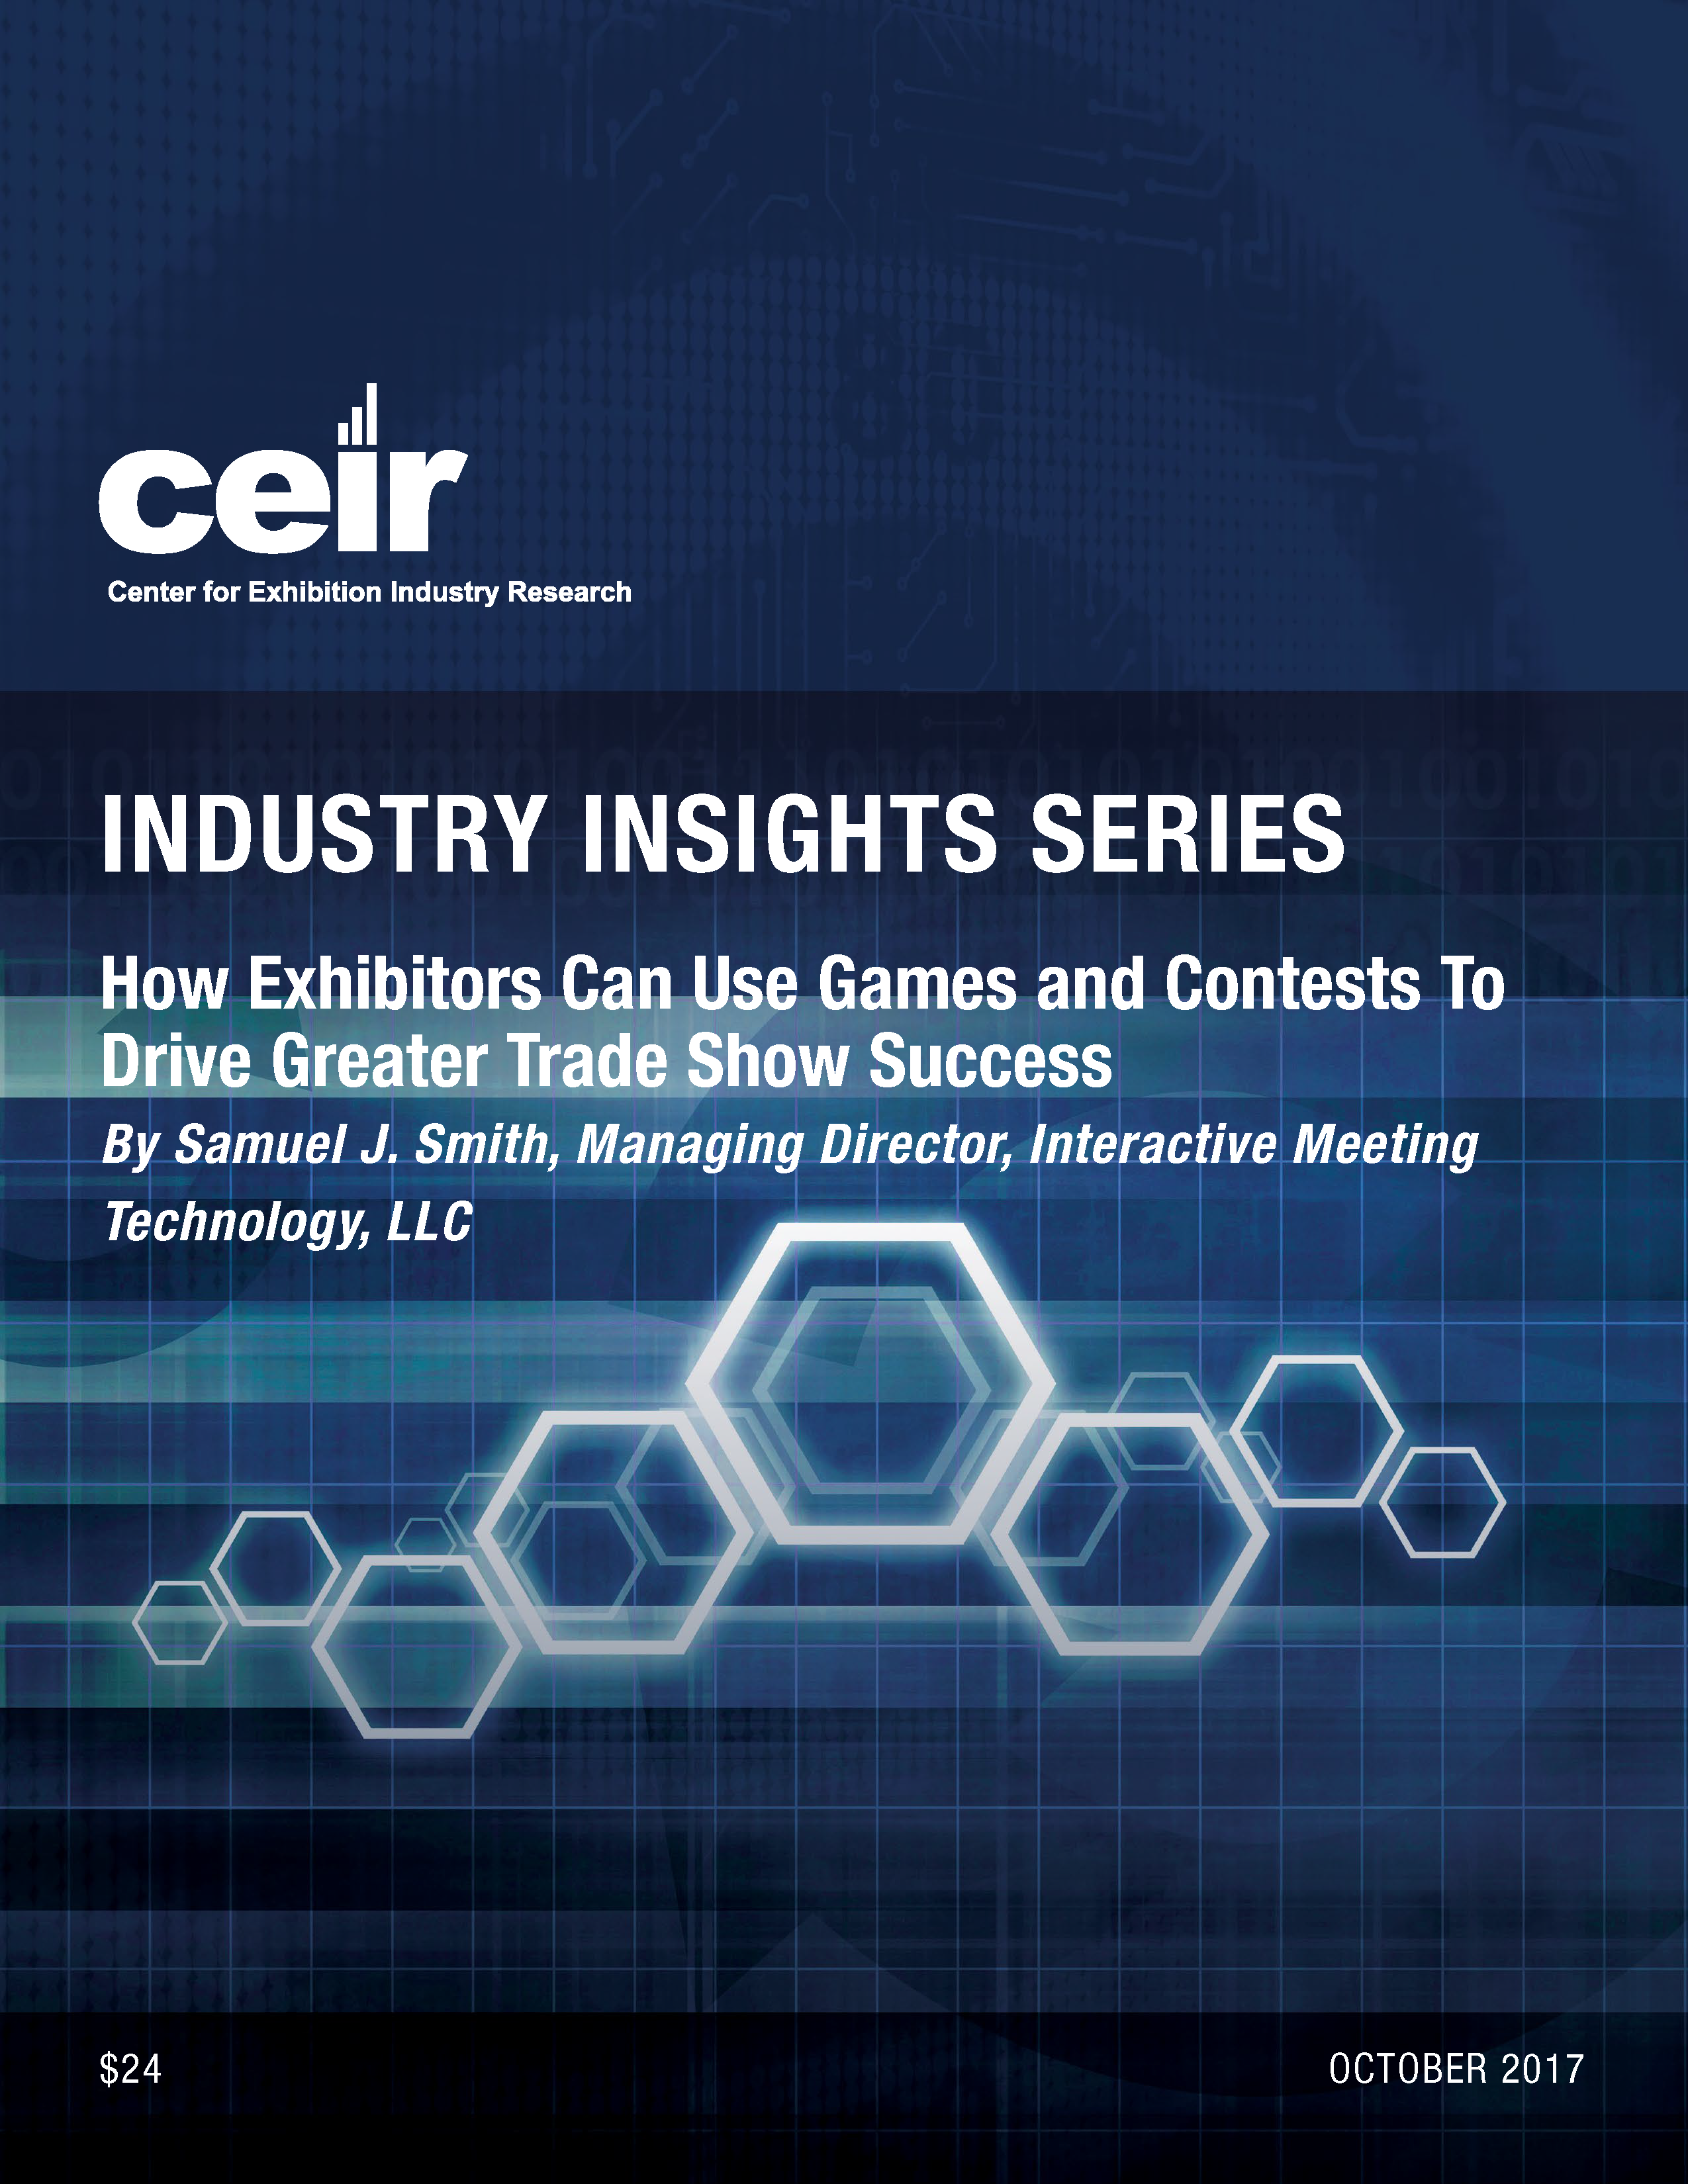 How Exhibitors Can Use Games and Contests To Drive Greater Trade Show Success cover image